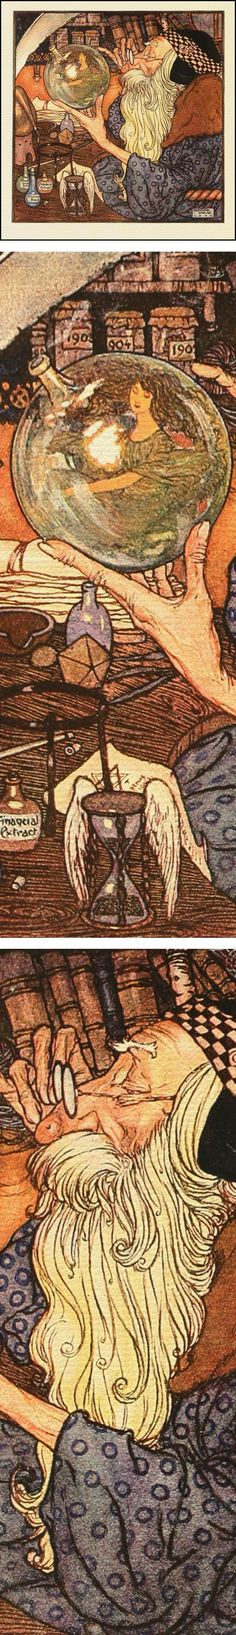 Lines and Colors: a blog about drawing, painting, illustration, comics, concept art and other visual arts » Eye Candy for Today: Dulac's Father Time